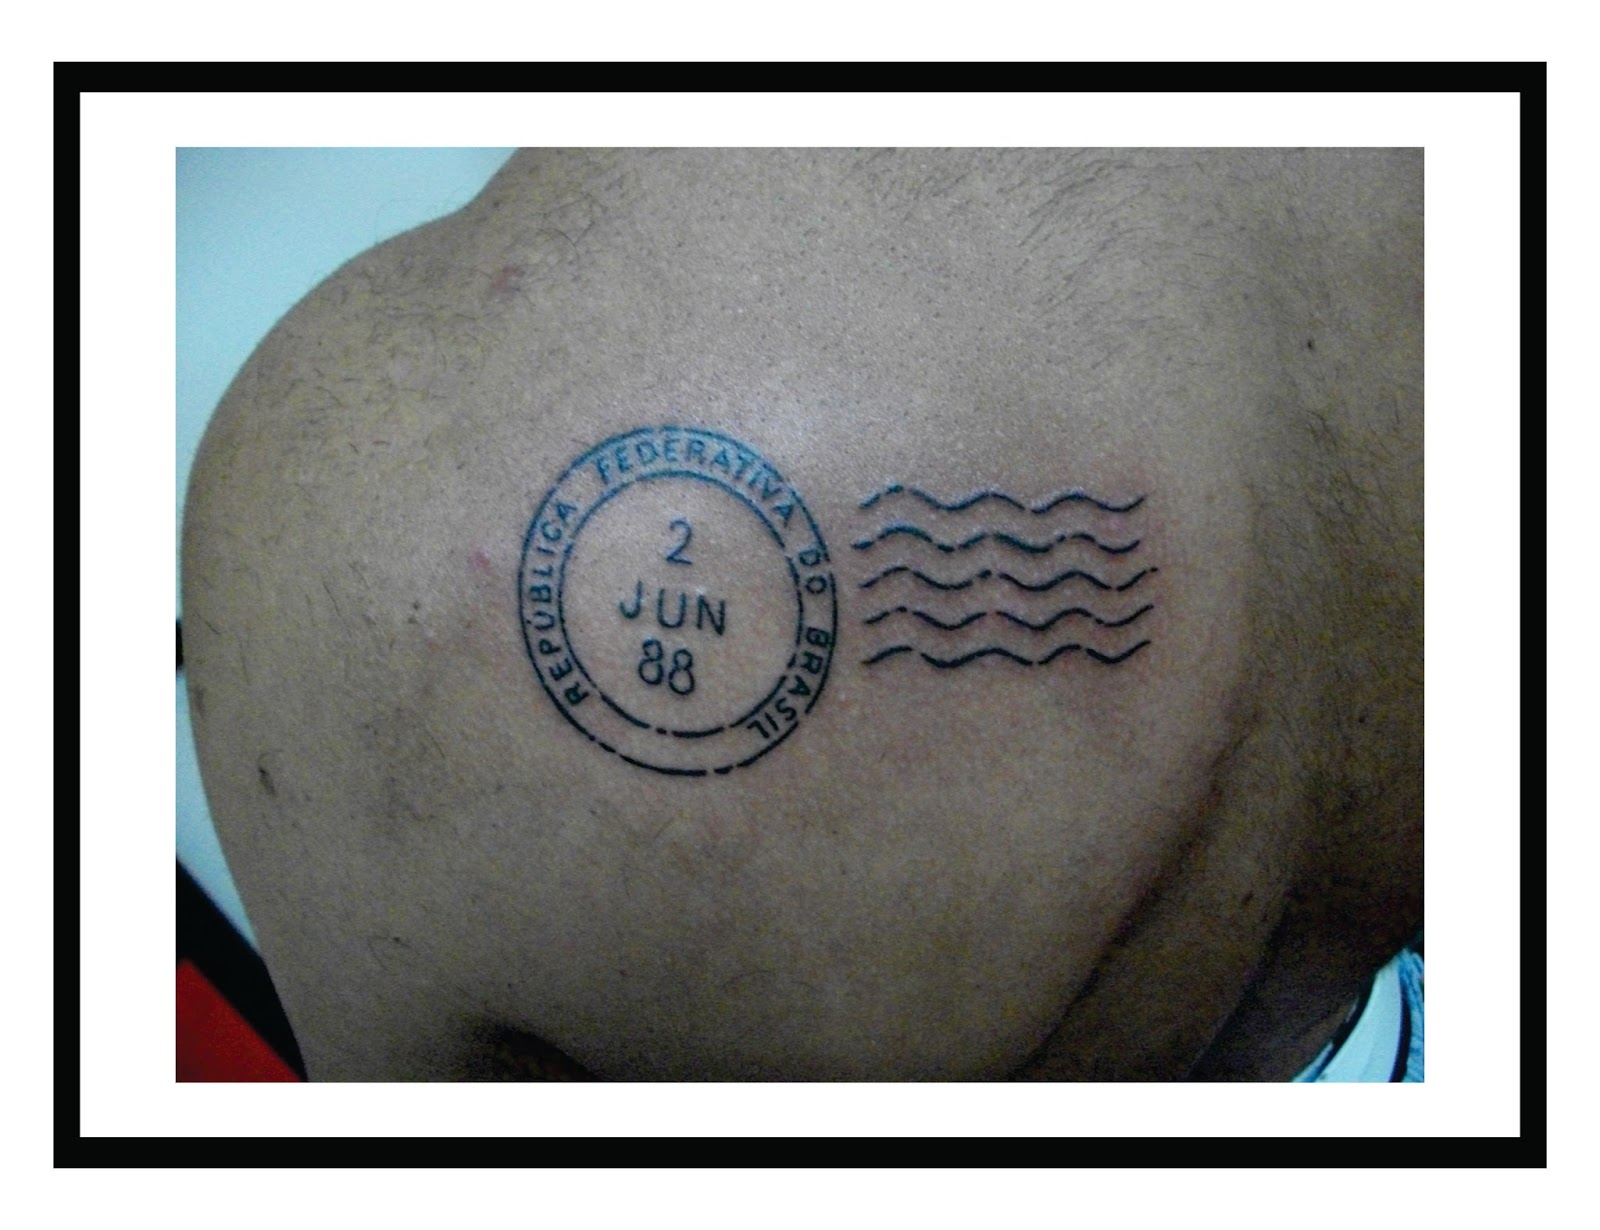 POST-OFFICE-STAMP-TATTOO